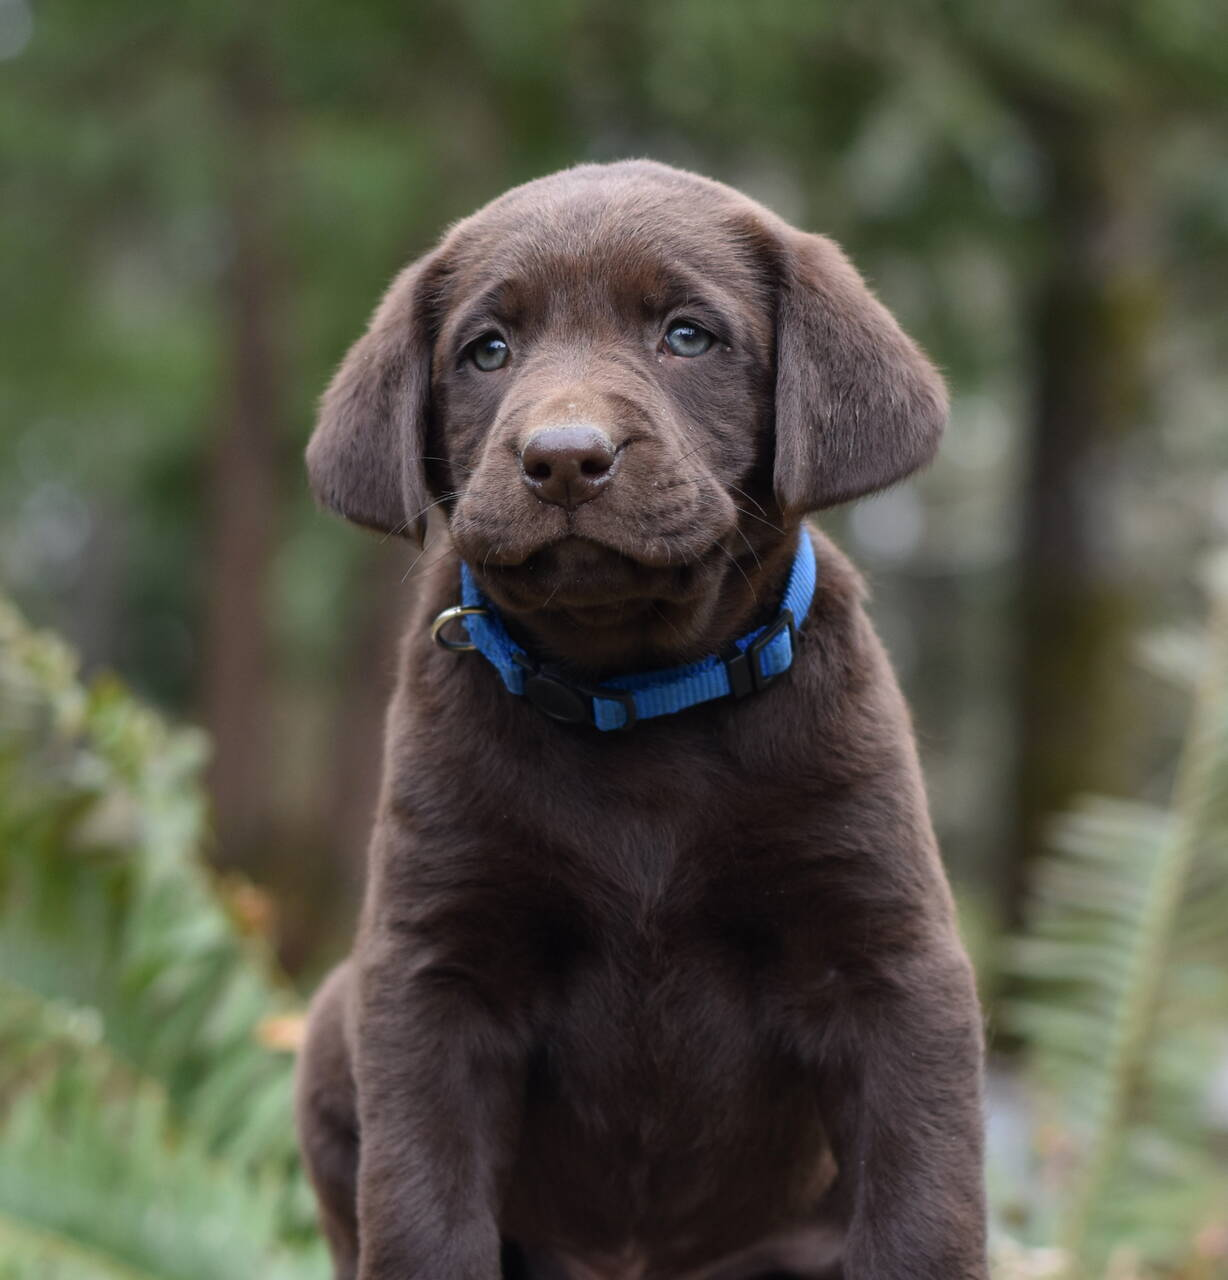 Chocolate and black labradors-Feb 2019-22.JPG